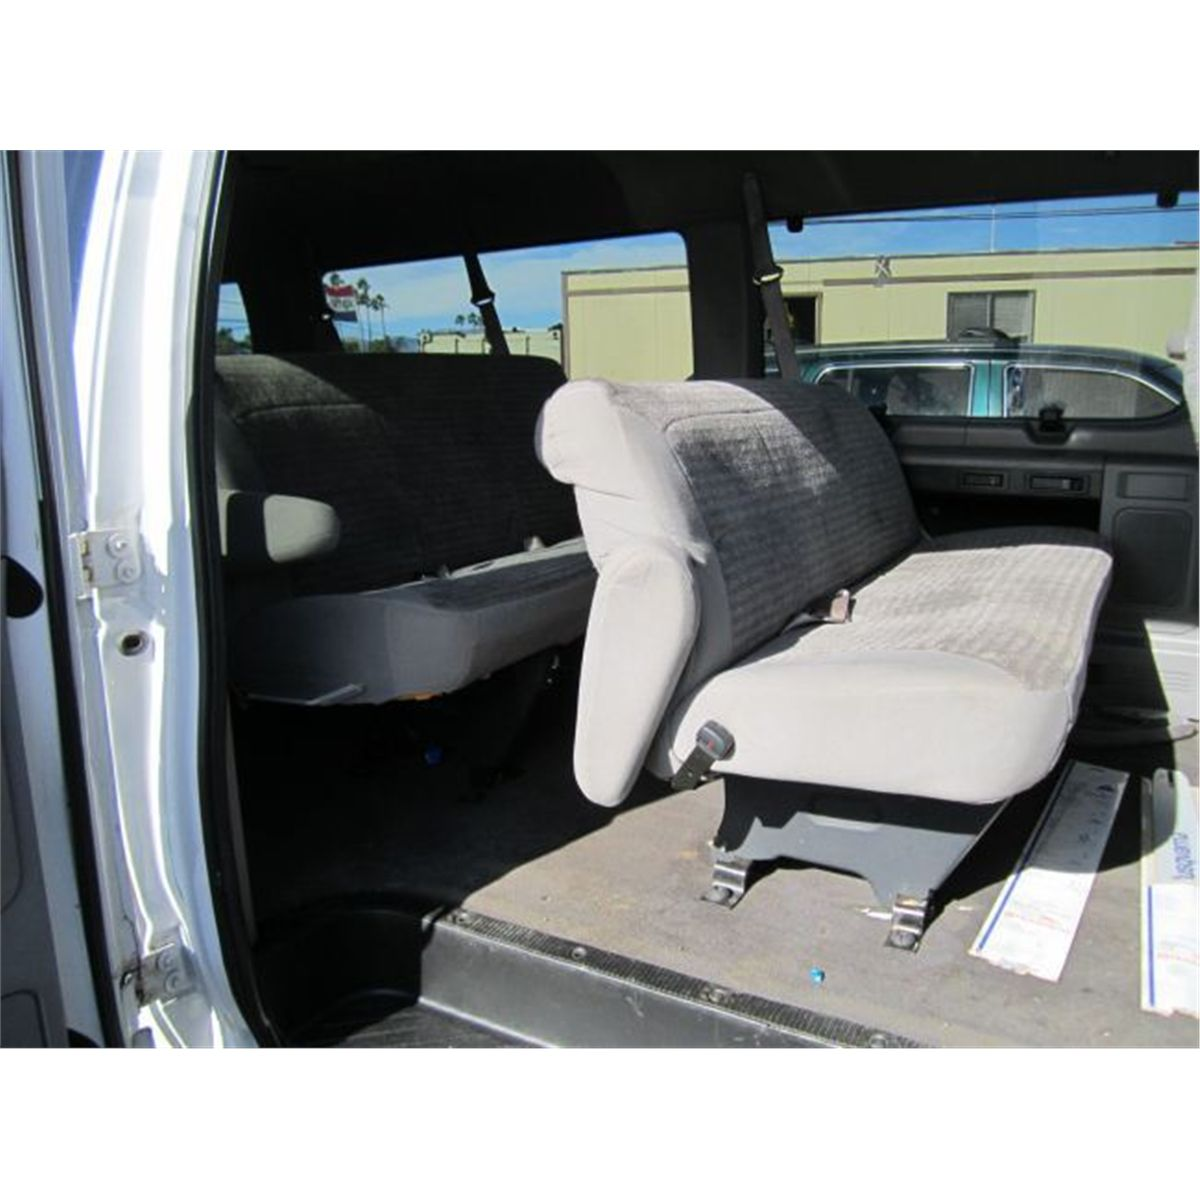 small resolution of  image 6 2000 ford e 350 xlt 15 passenger van